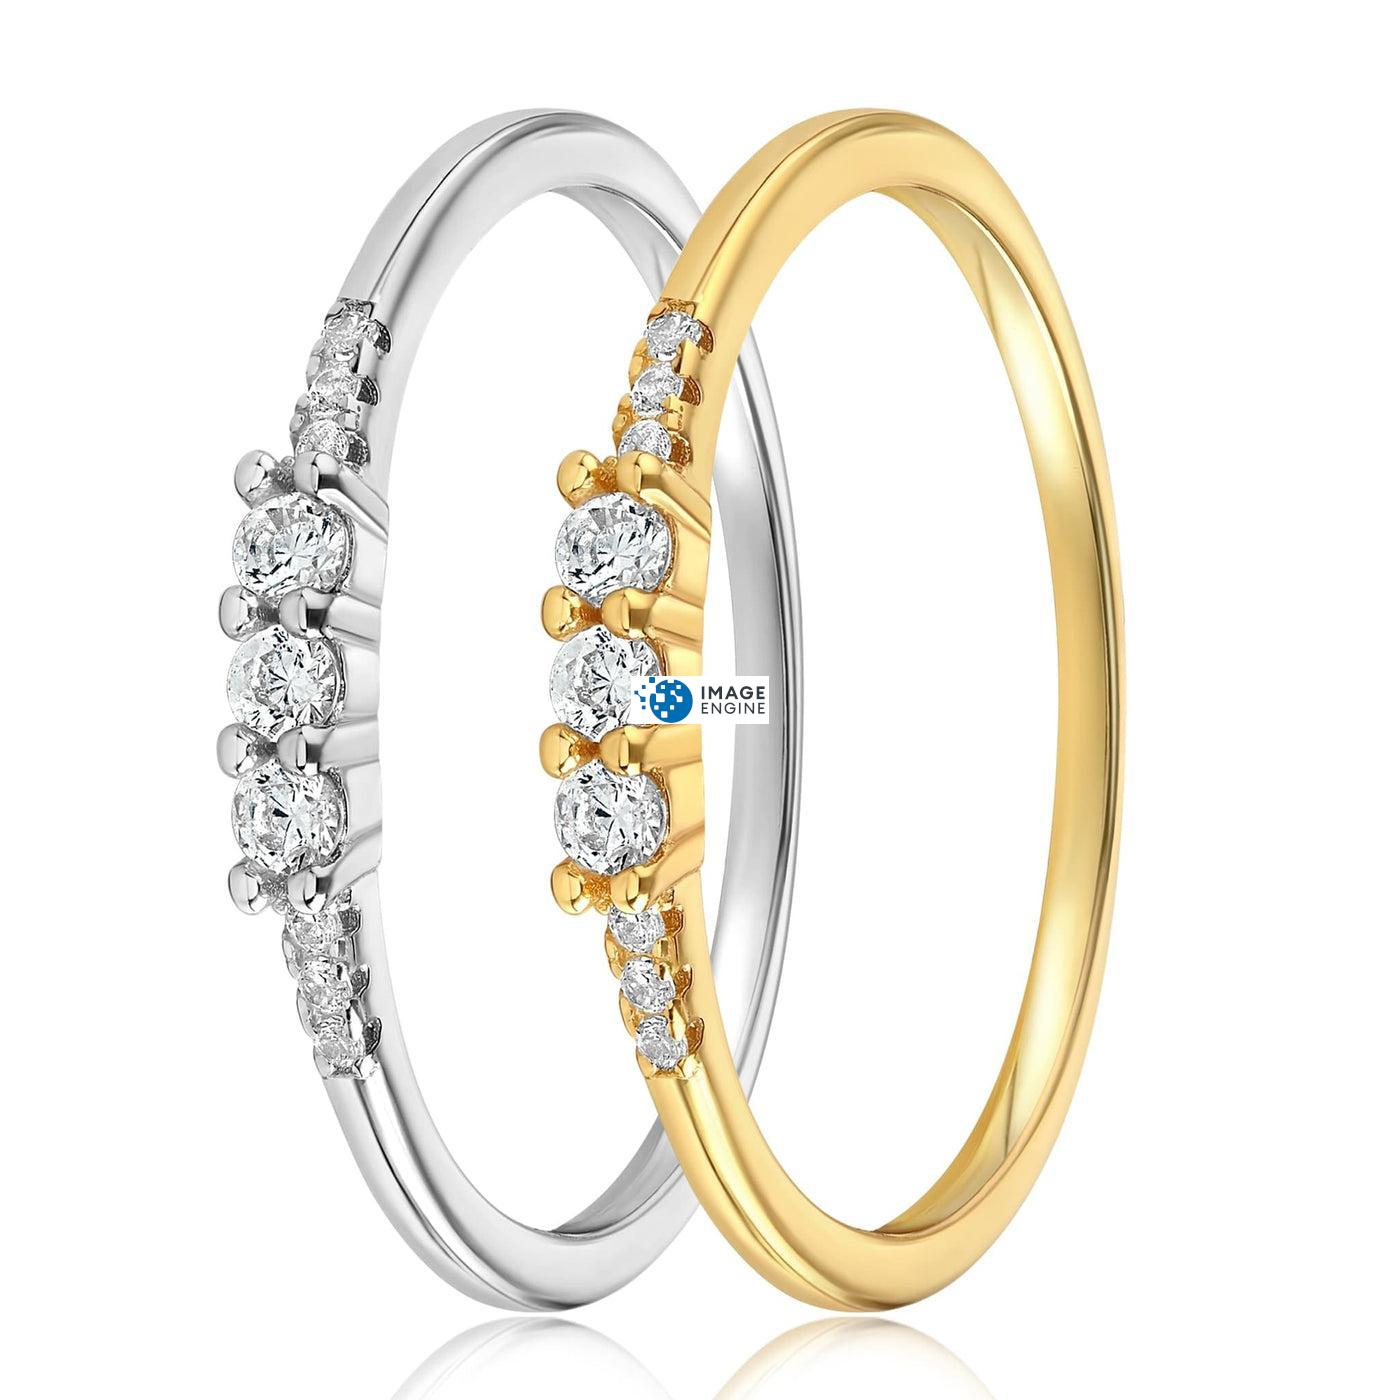 Emie Ring - Side by Side - 18K Yellow Gold and 925 Sterling Silver